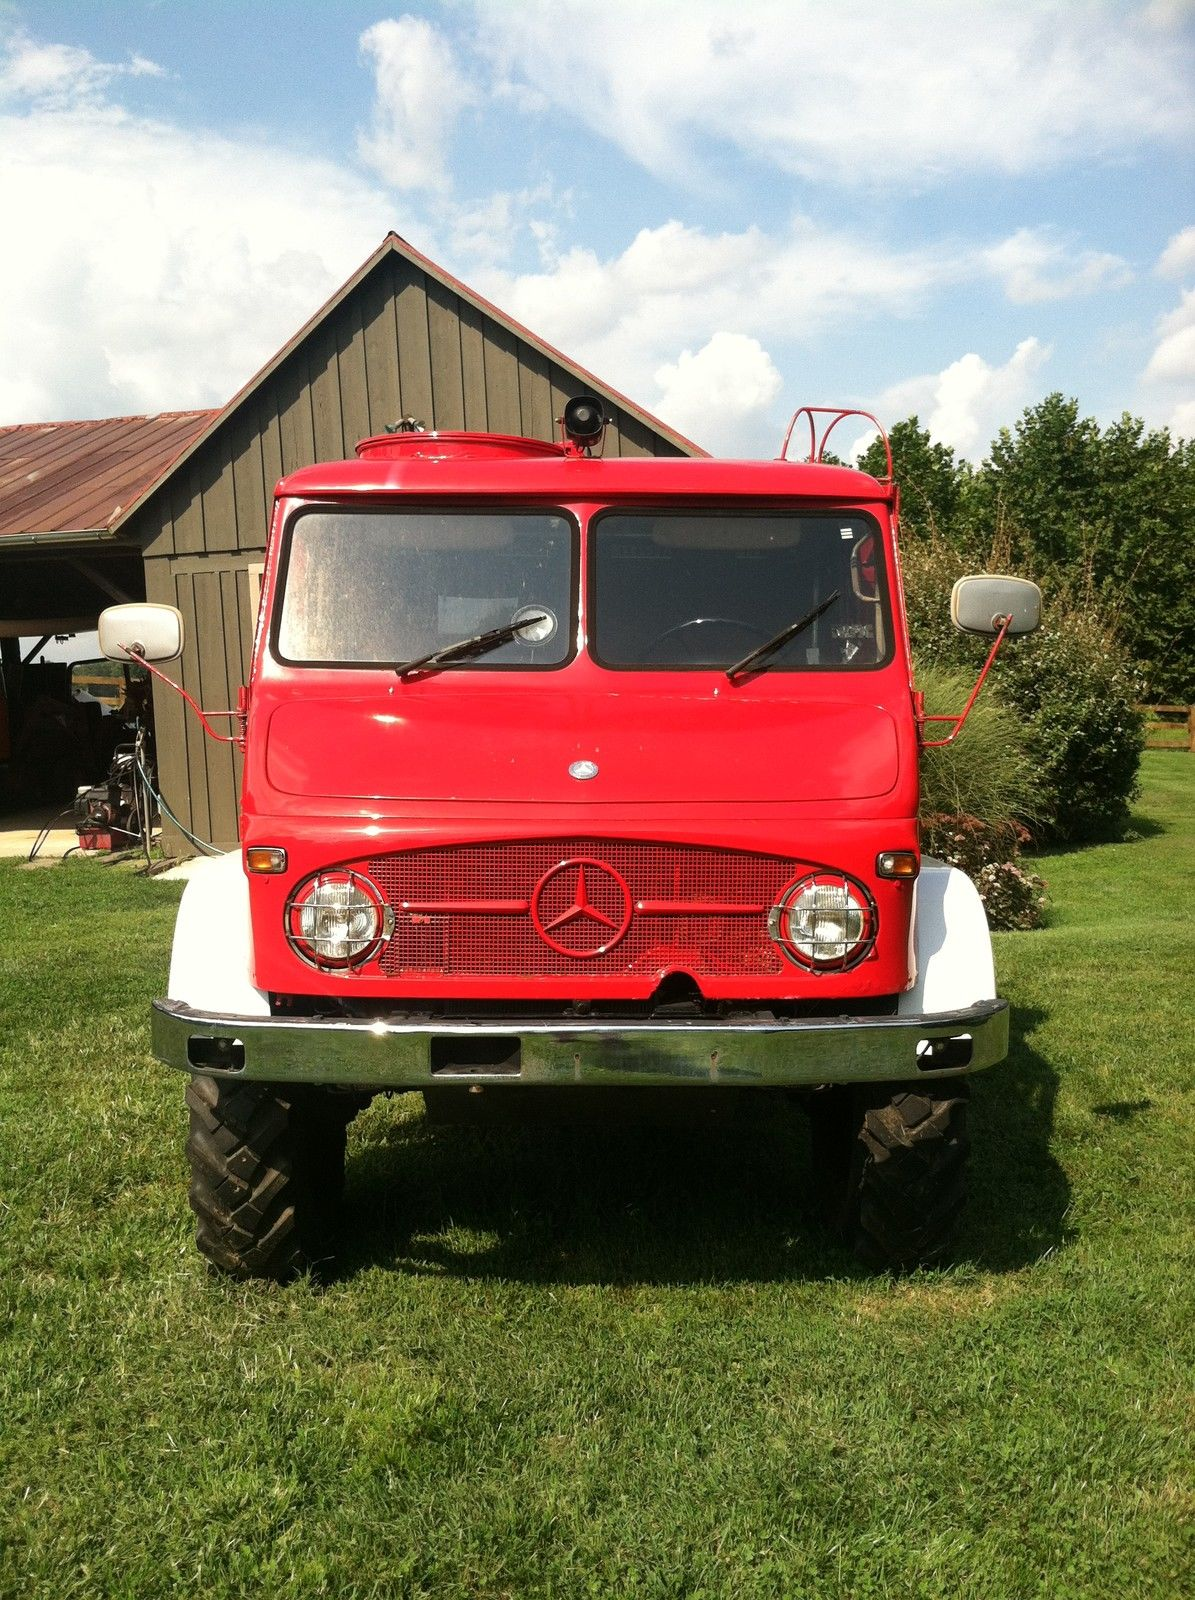 1964 mercedes benz unimog 404 fire pumper truck with for Mercedes benz unimog